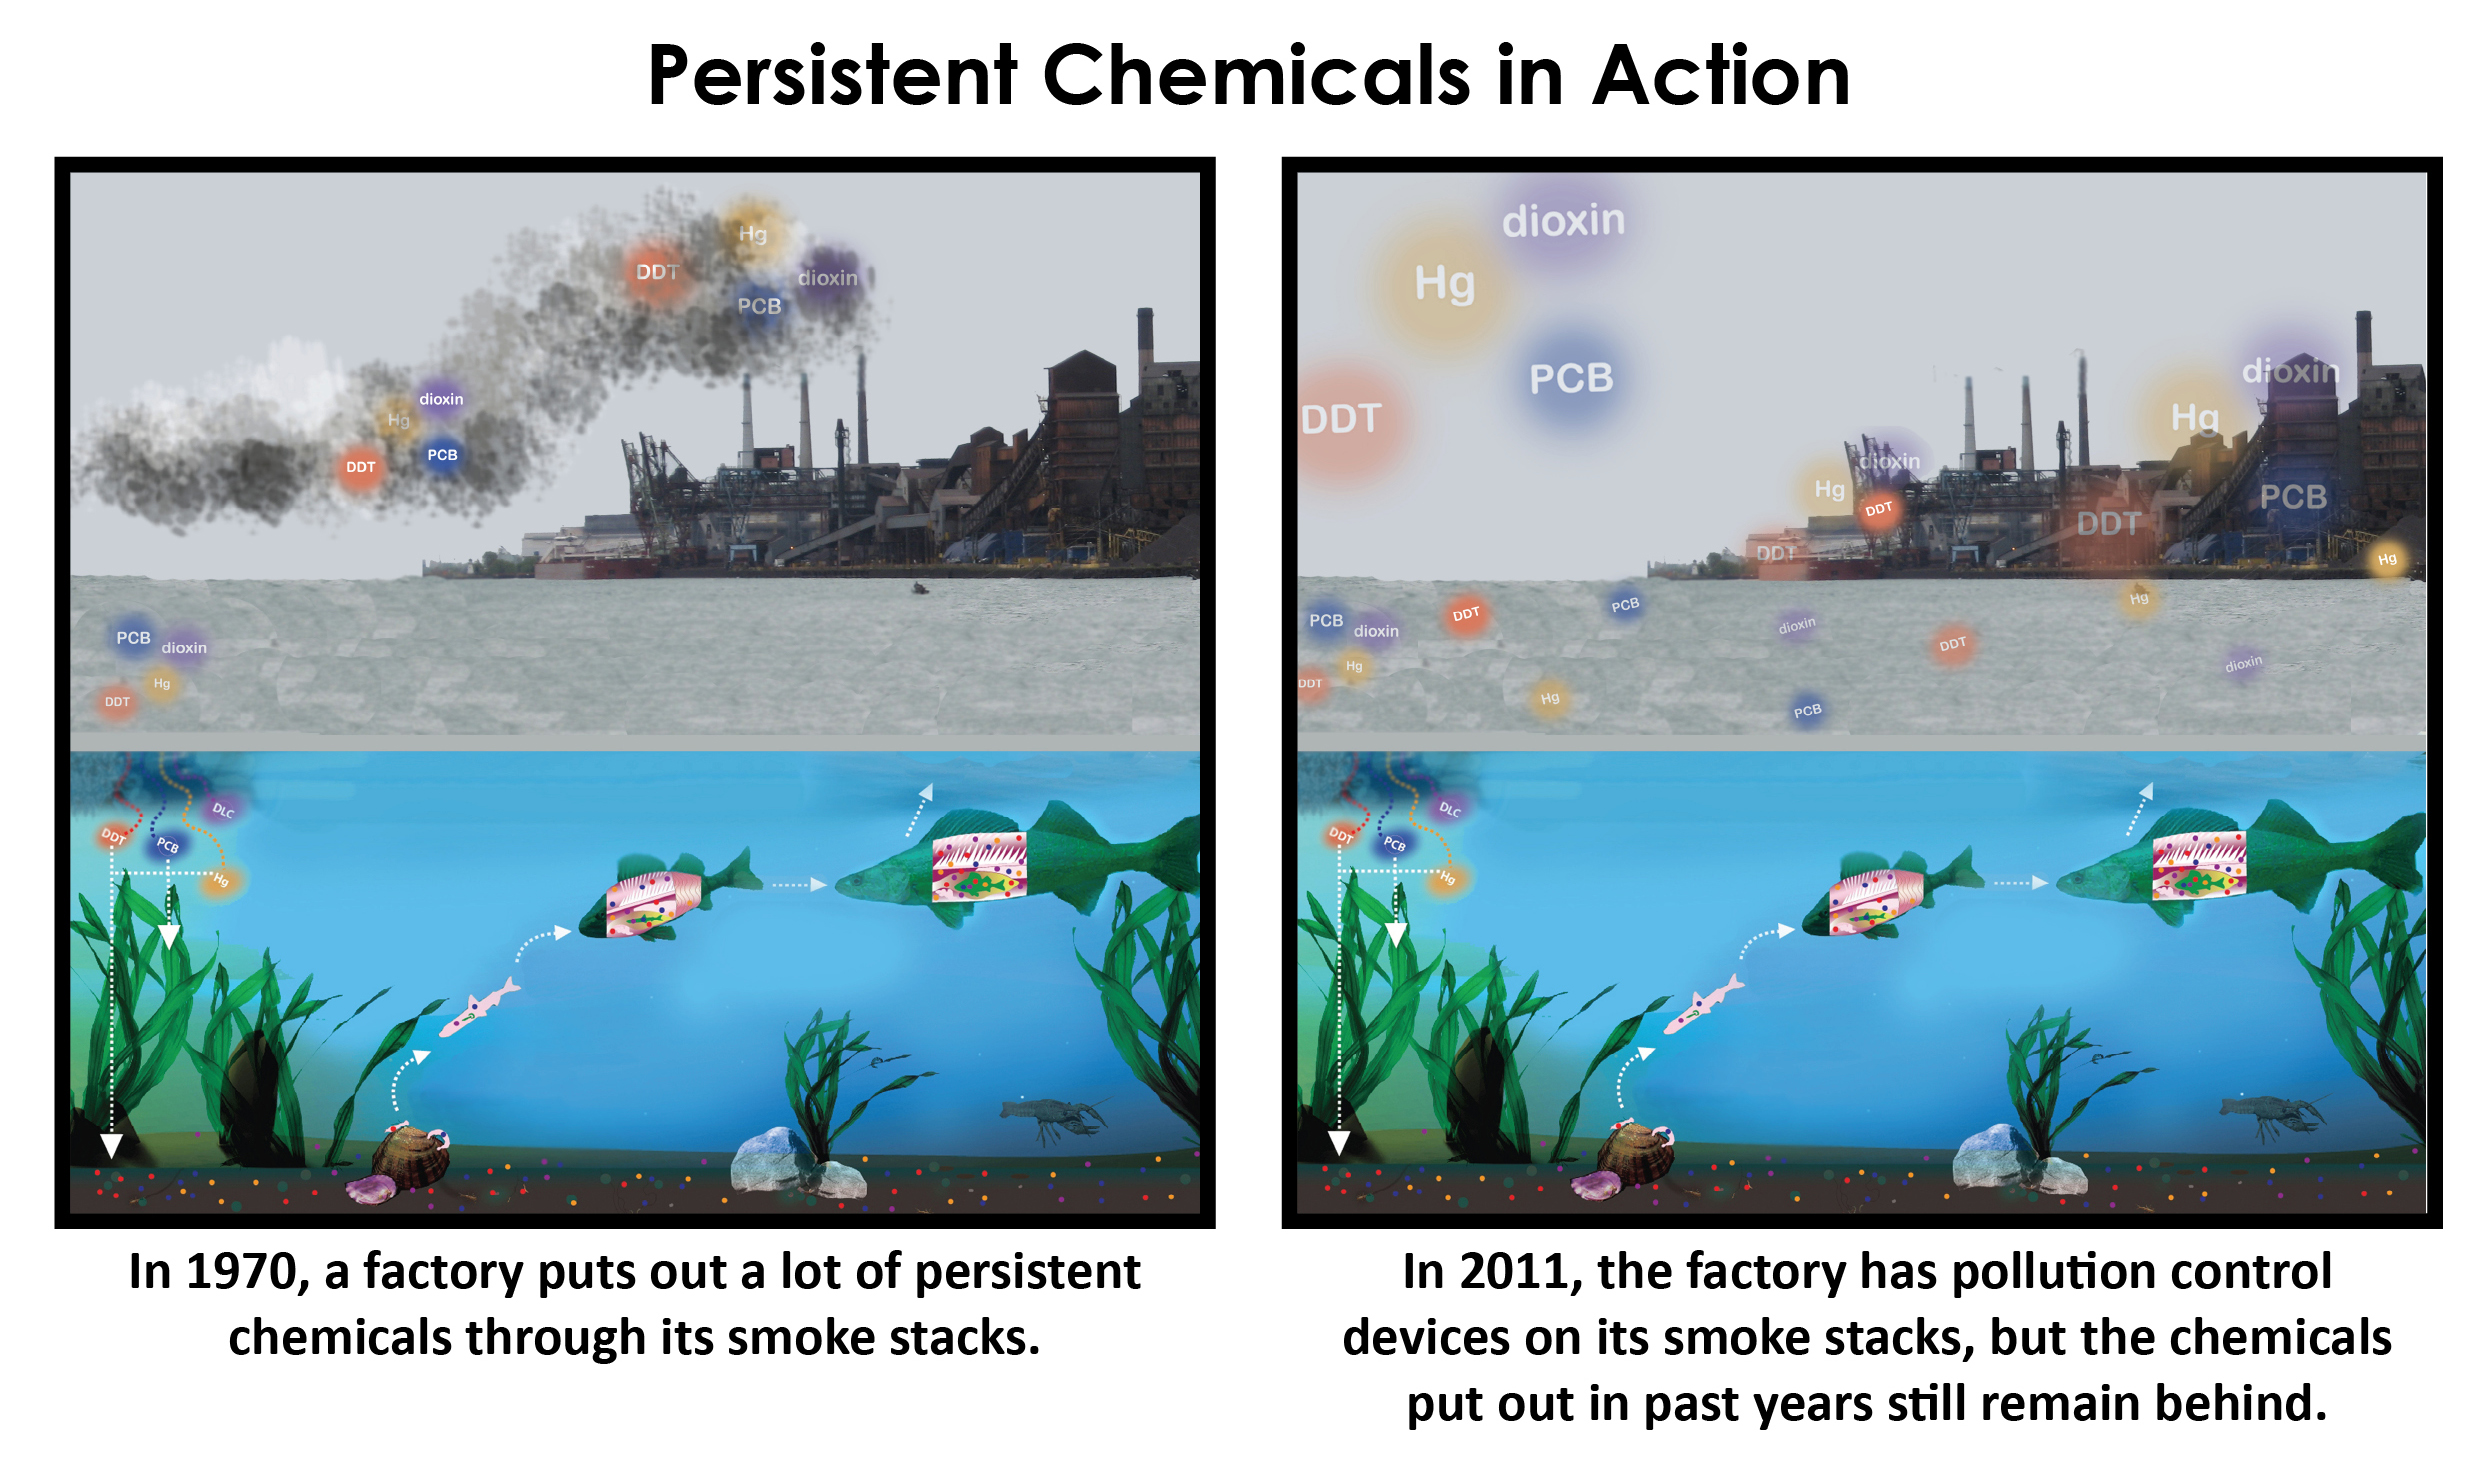 PERSISTENT_CHEMICALS_IN_ACTION_354013_7